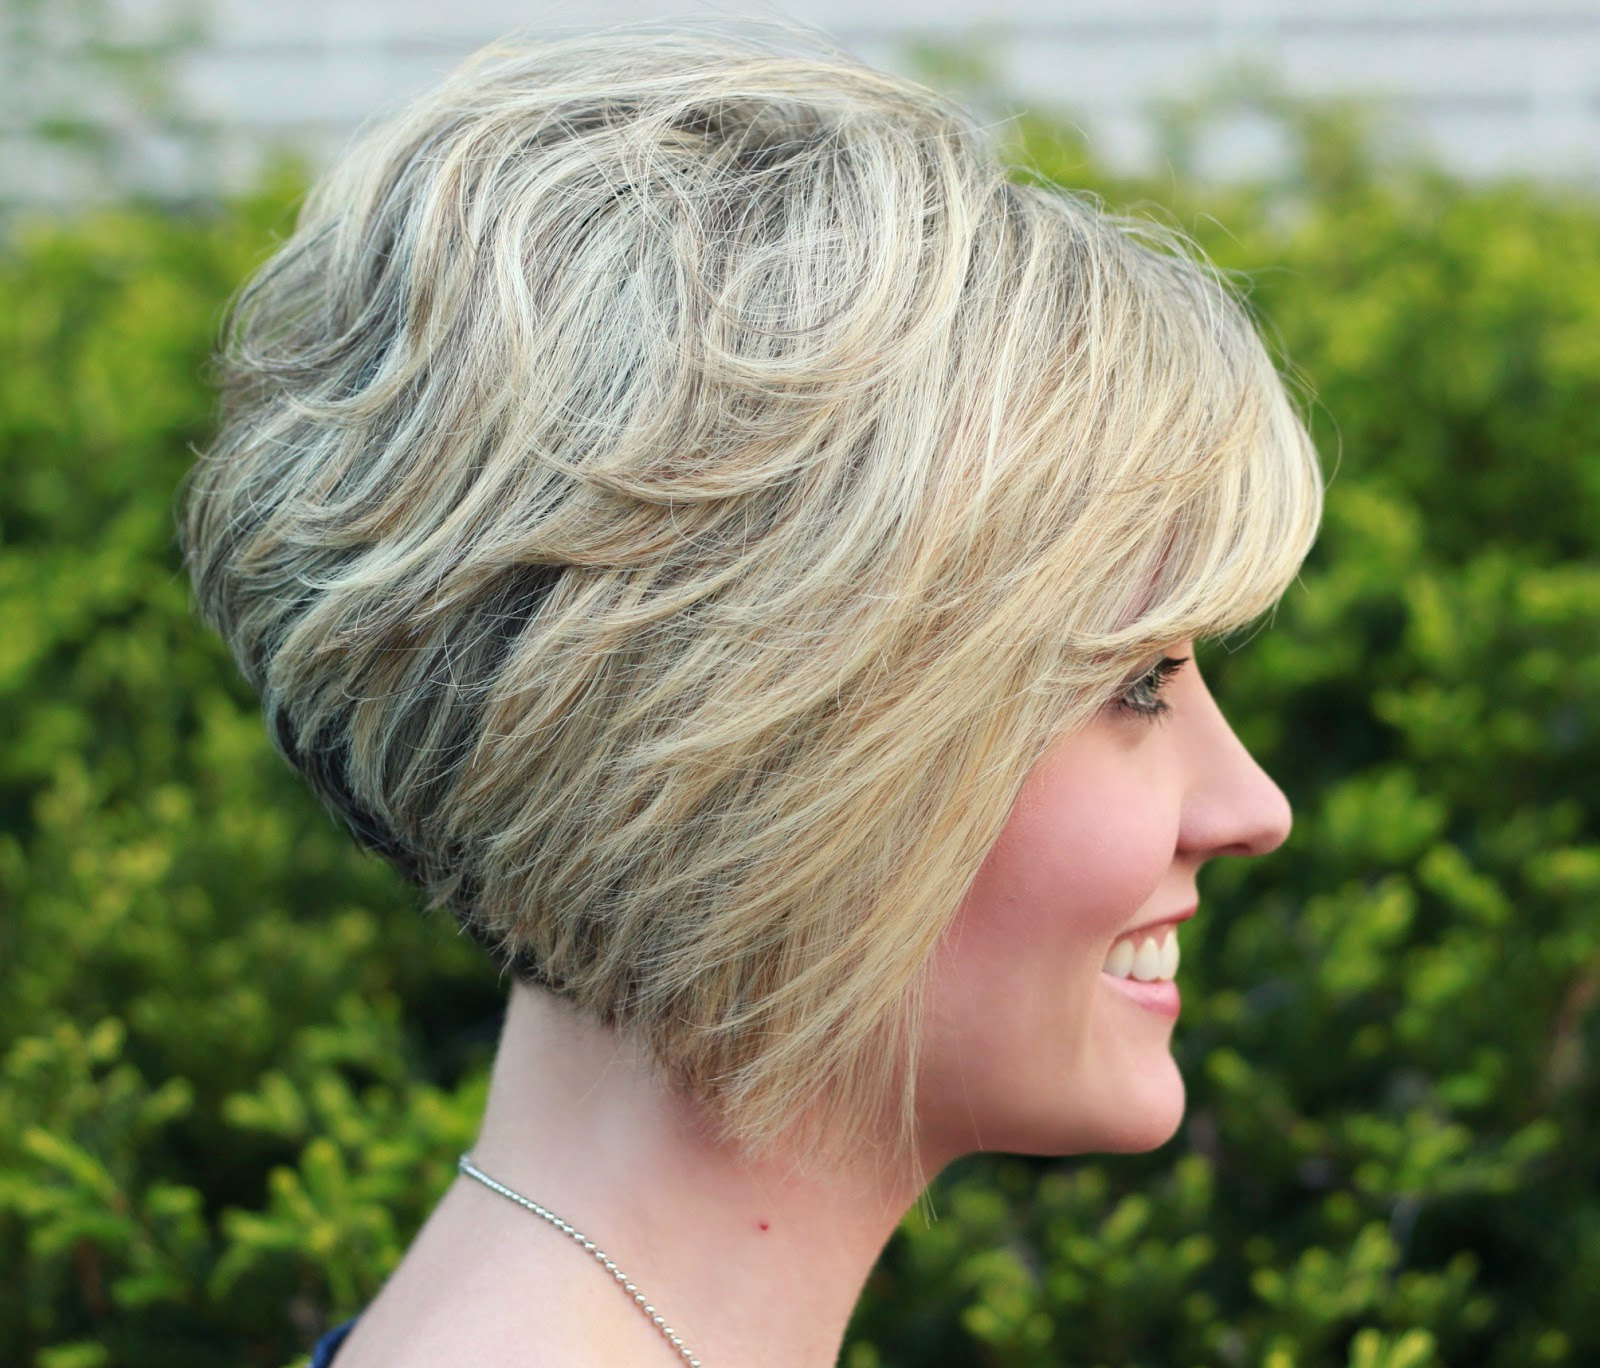 Short Curly Inverted Bob Hairstyles 22 Cute Inverted Bob Hairstyles For Inverted Short Haircuts (View 21 of 25)